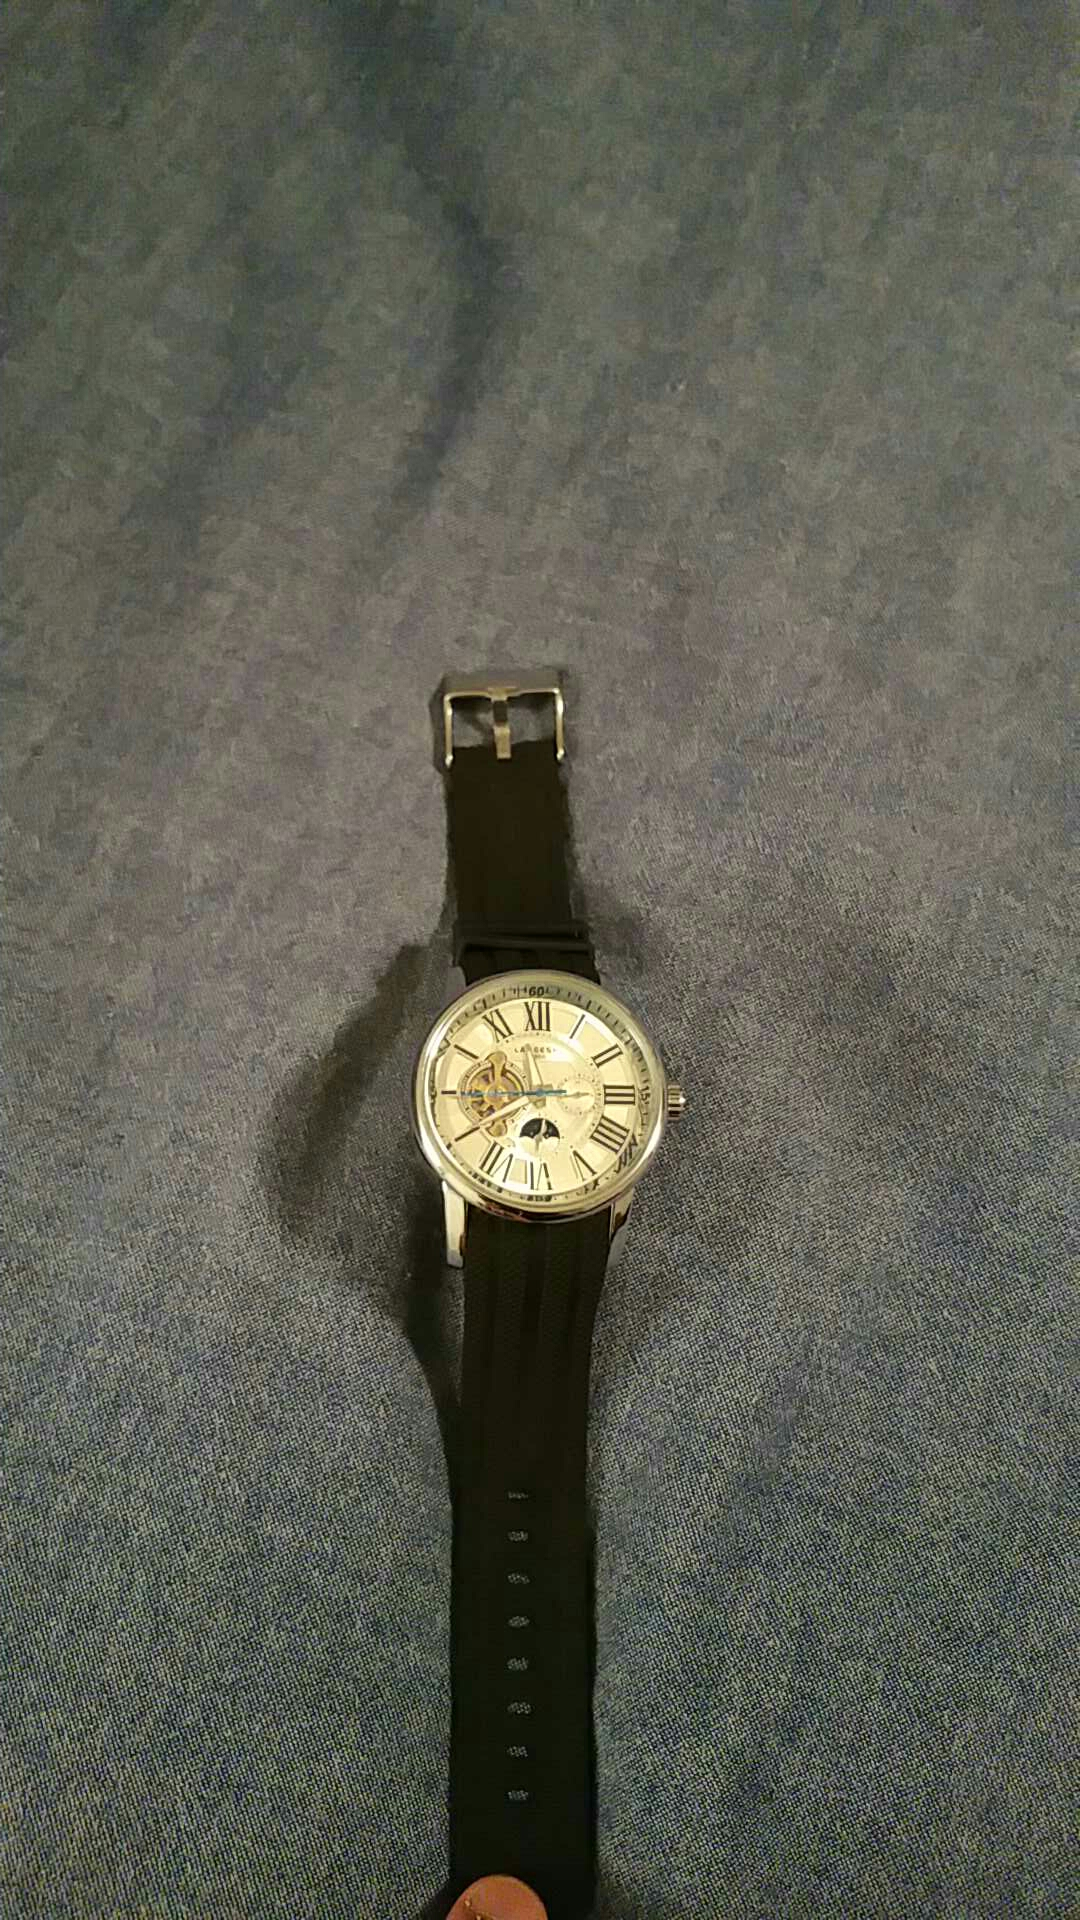 Black and silver mechanical watch